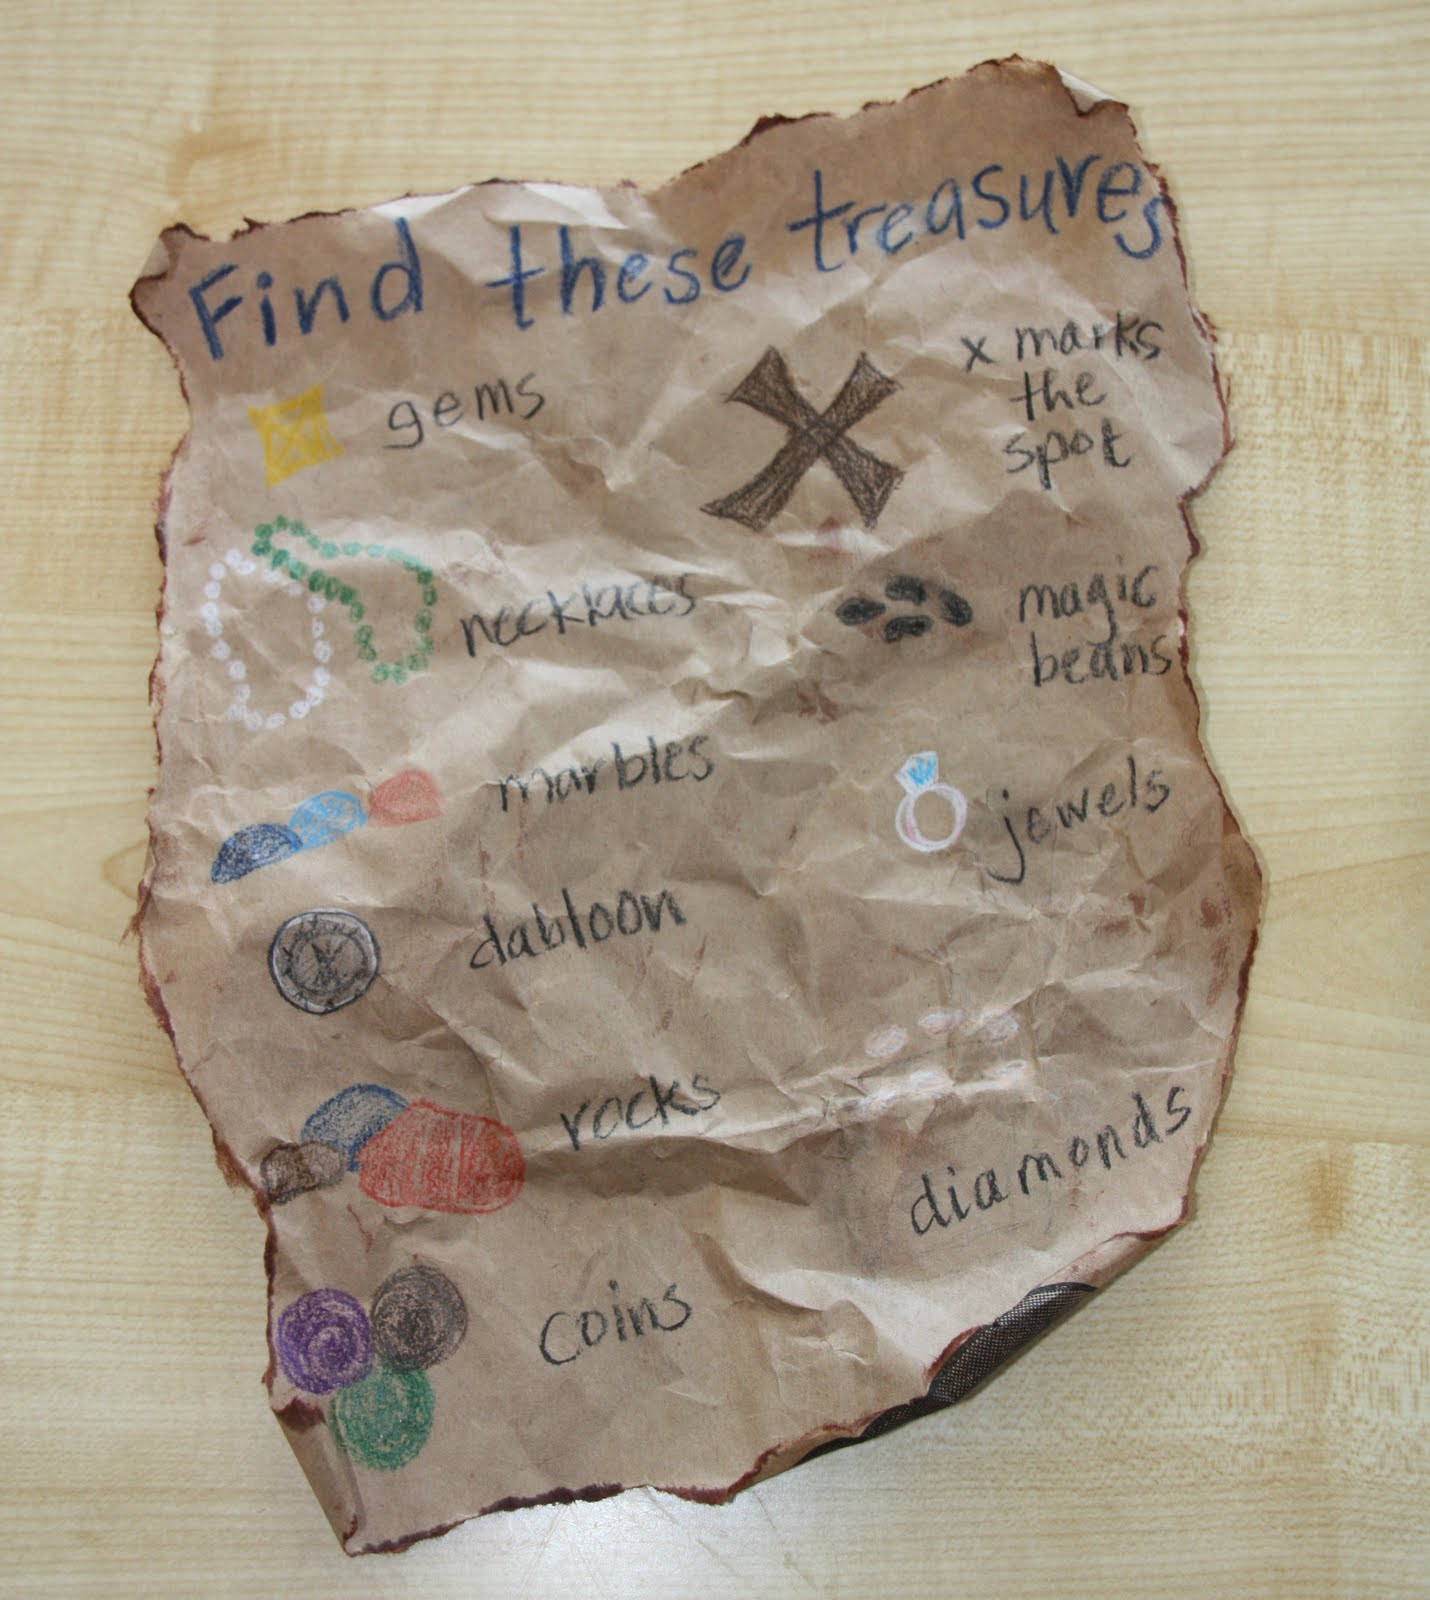 treasure map paper Treasure map according to legend, there are hundreds of lost treasures off the coast of many international lands from canada to south america this map, on sturdy antiqued parchment, reveals 67 separate sunken and buried treasures known from history, research and pirate lore.